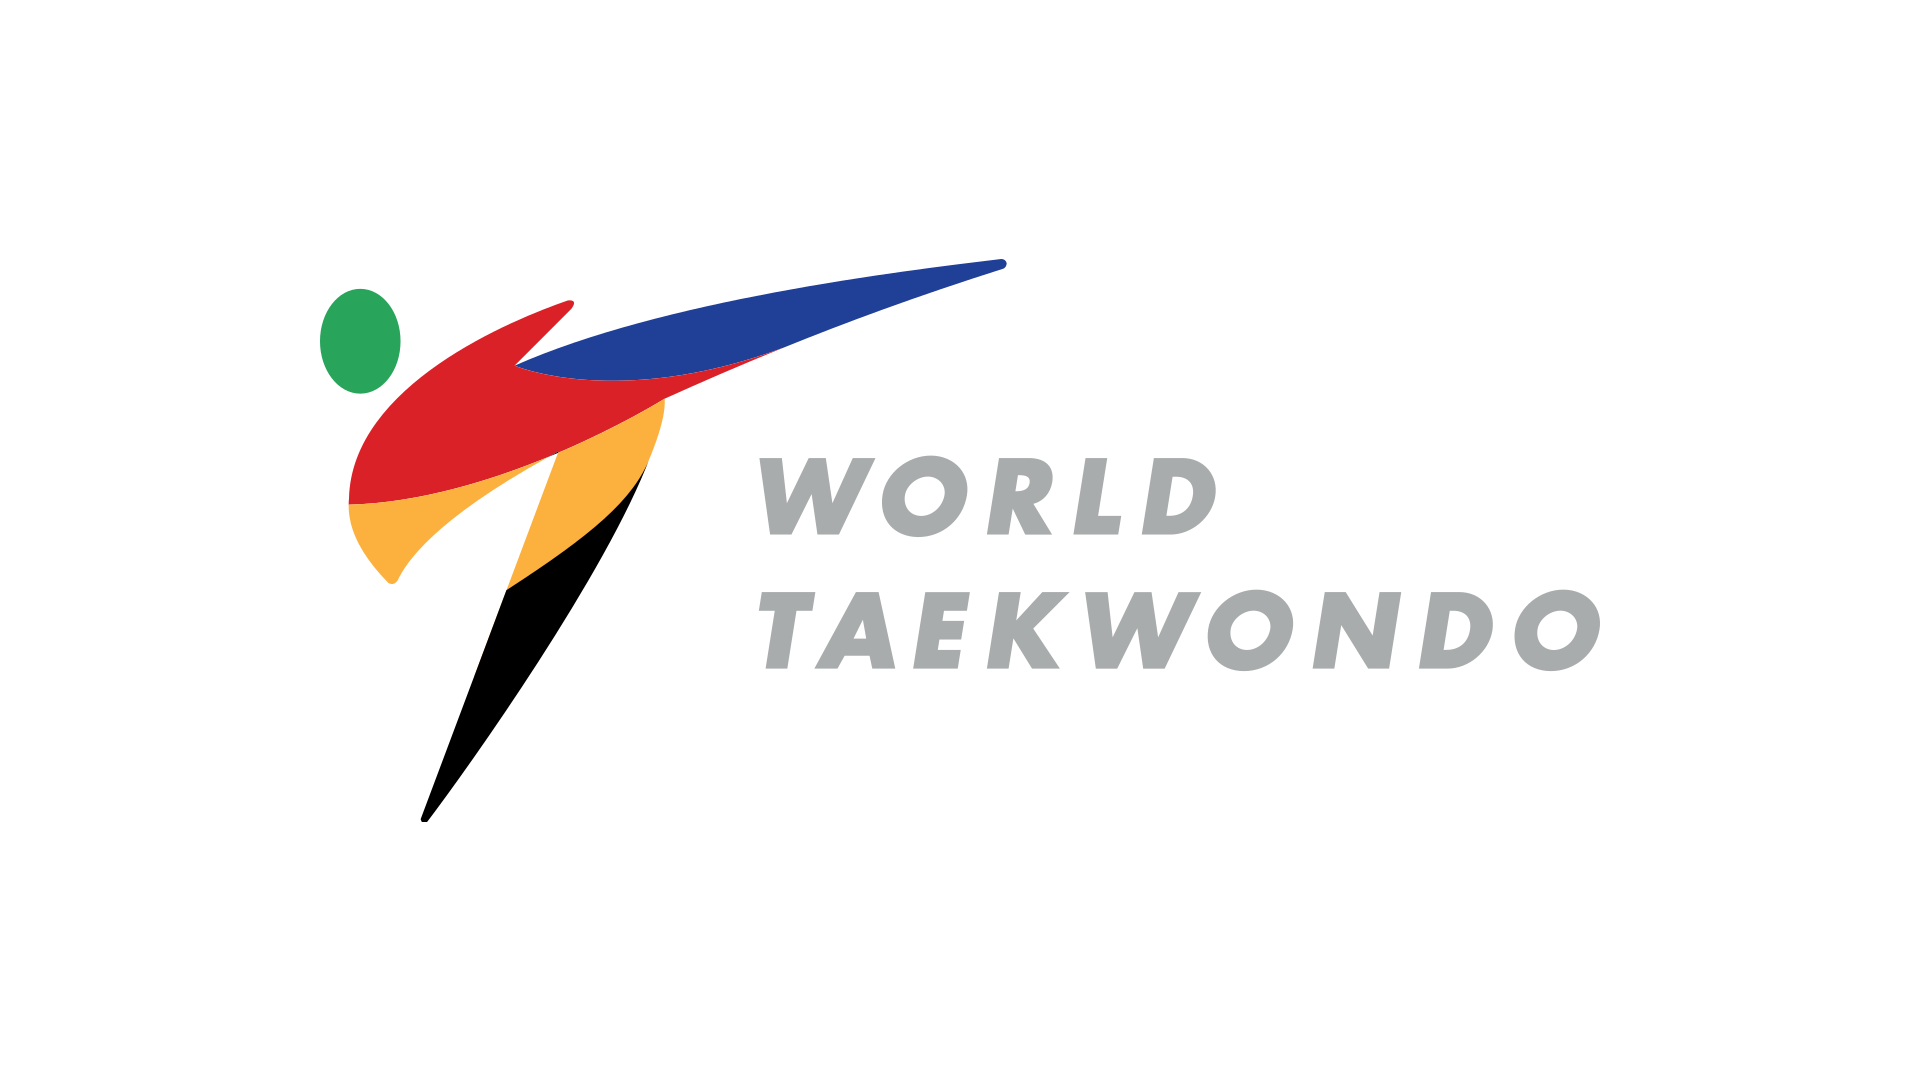 2017-world-taekwondo-federation-logo-design-3.jpg